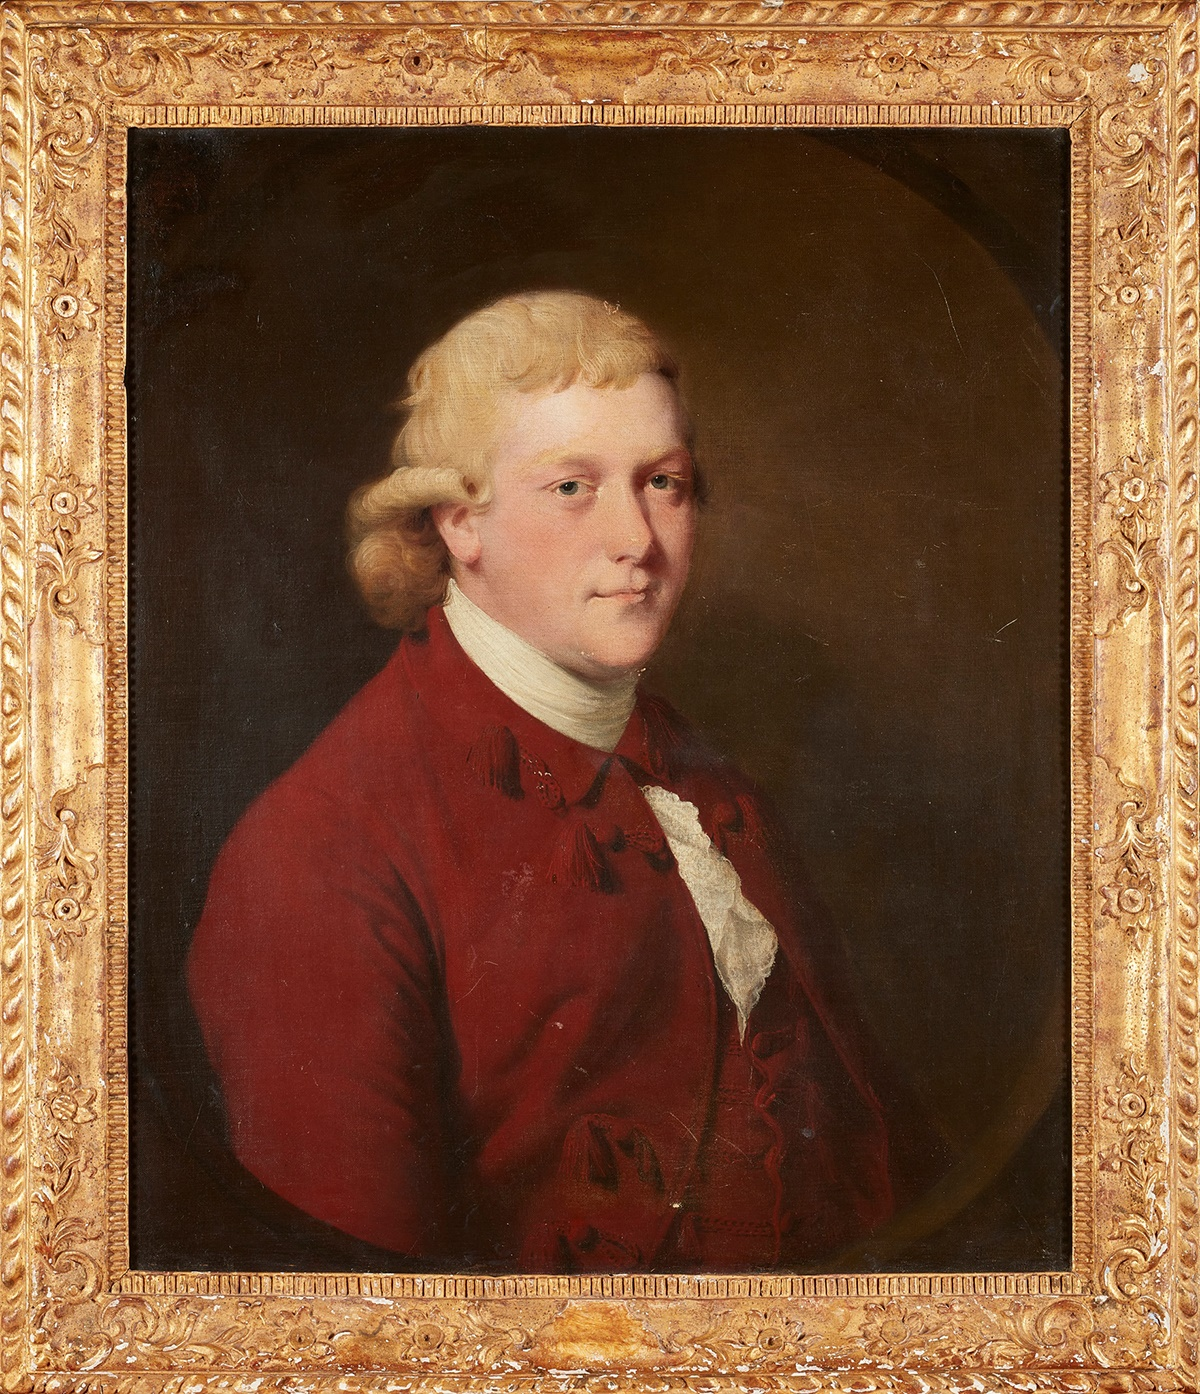 JOSEPH WRIGHT OF DERBY (BRITISH 1734-1797) PORTRAIT OF HENRY FLINT (MAYOR OF DERBY IN 1770 AND 1786)